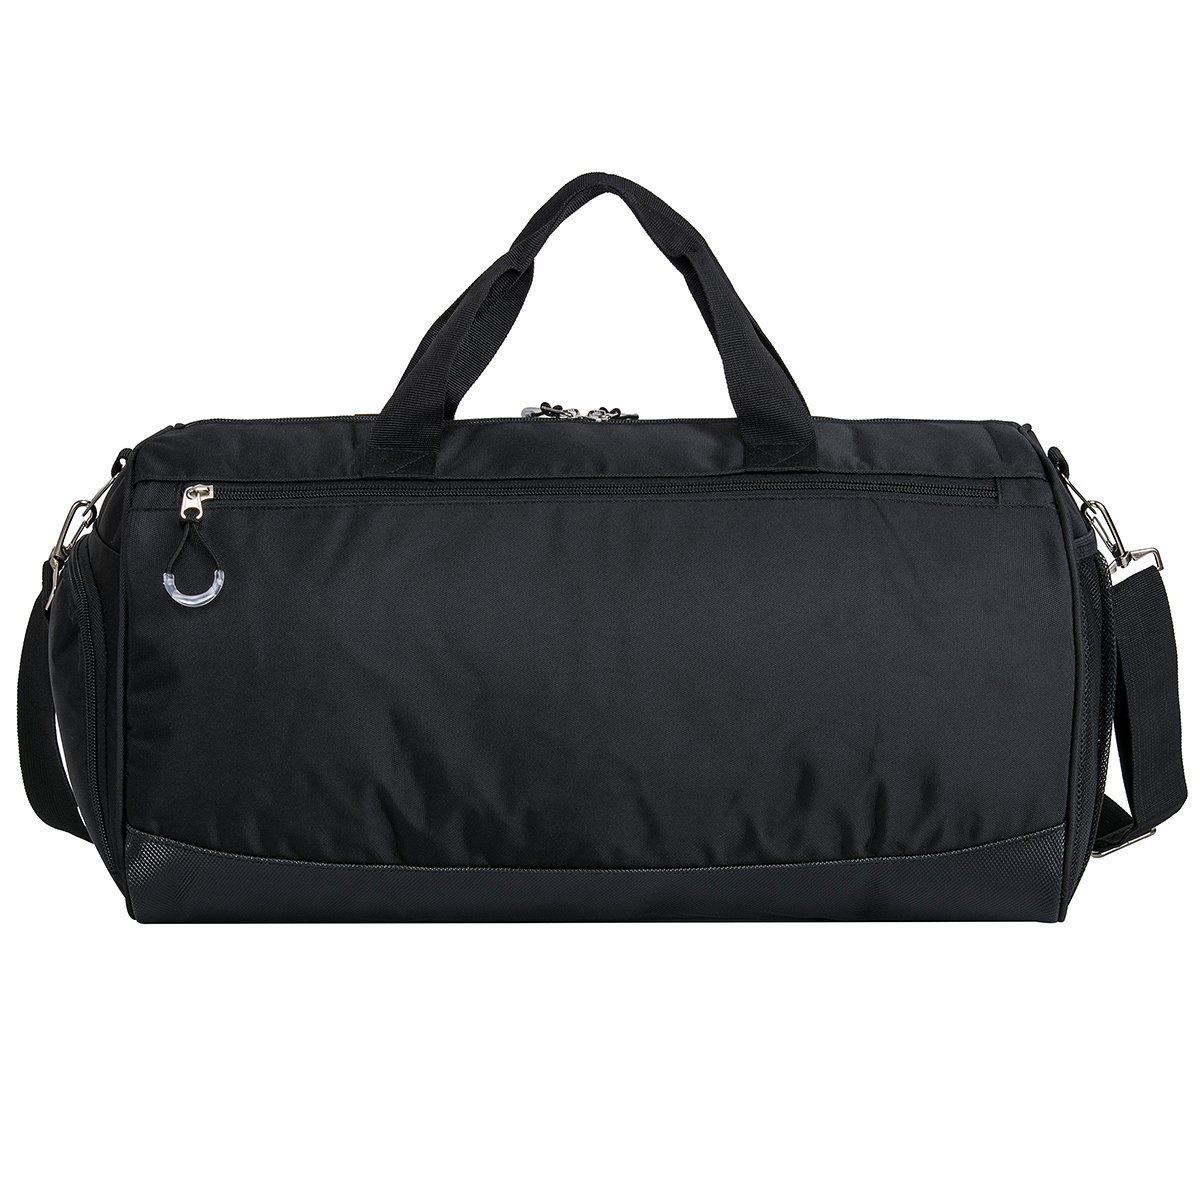 Eocean Dry Wet Depart Duffle Bag Sports Gym Bag with Shoes Compartment Waterproof Gym Sports Bag for Men and Women Black